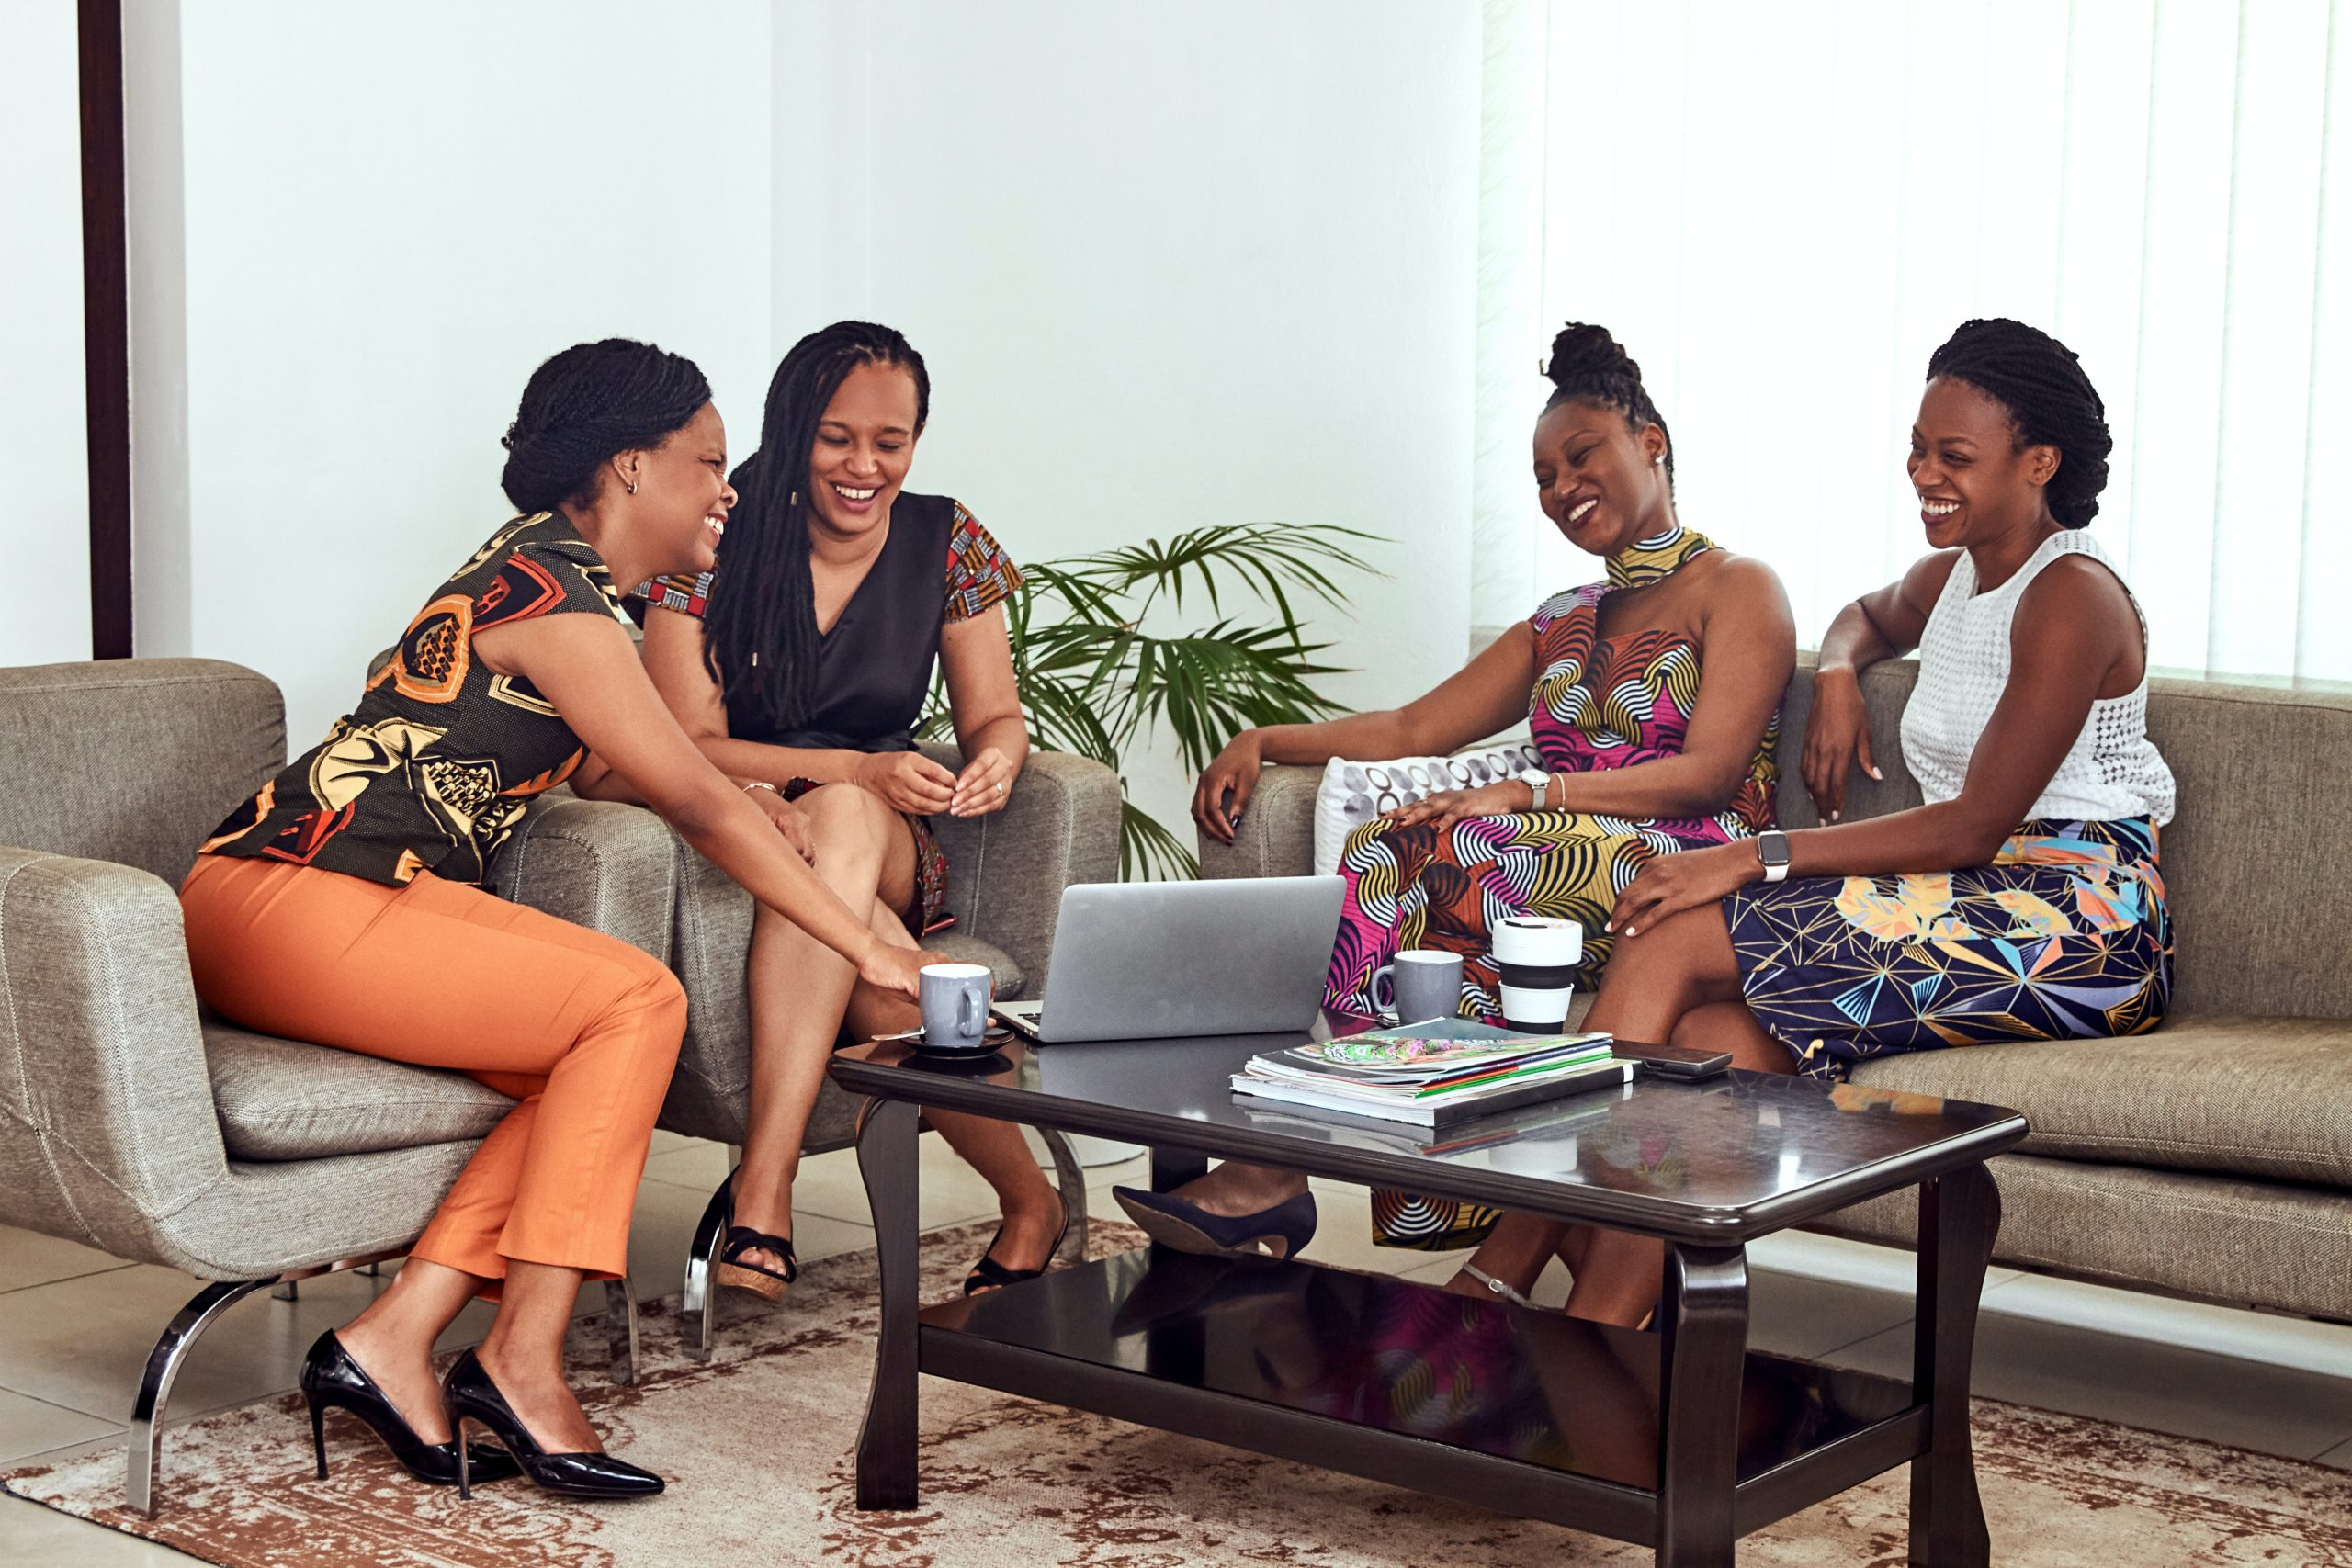 THE TYPES OF FRIENDS EVERY CHRISTIAN SINGLE GIRL NEEDS.